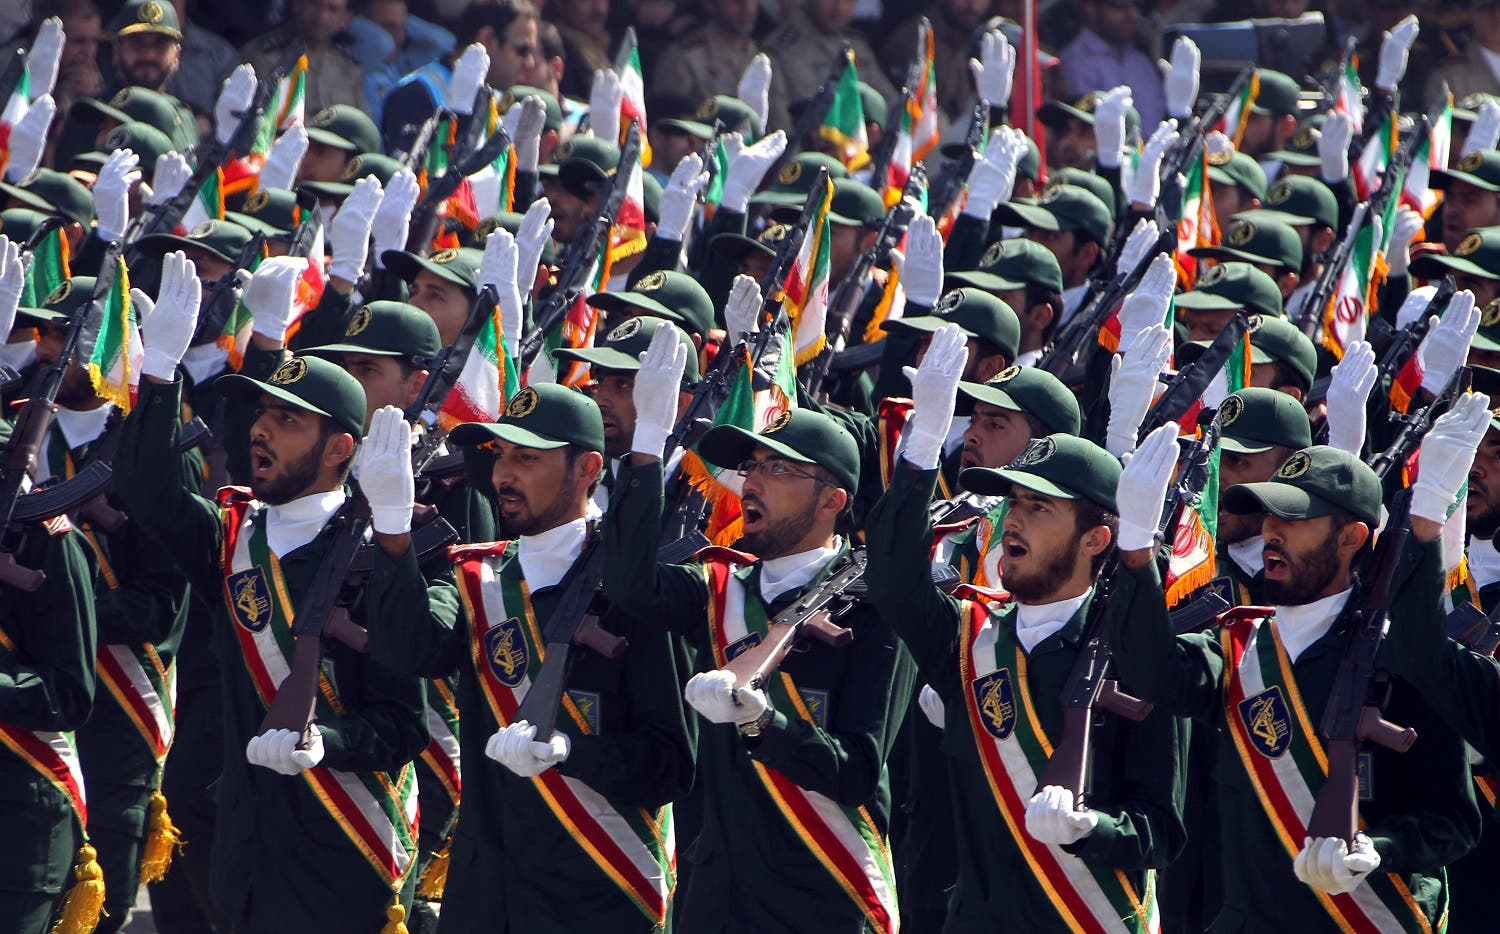 Members of IRGC participating in a march past during an annual military parade in Tehran, on September 22, 2013. (AFP)